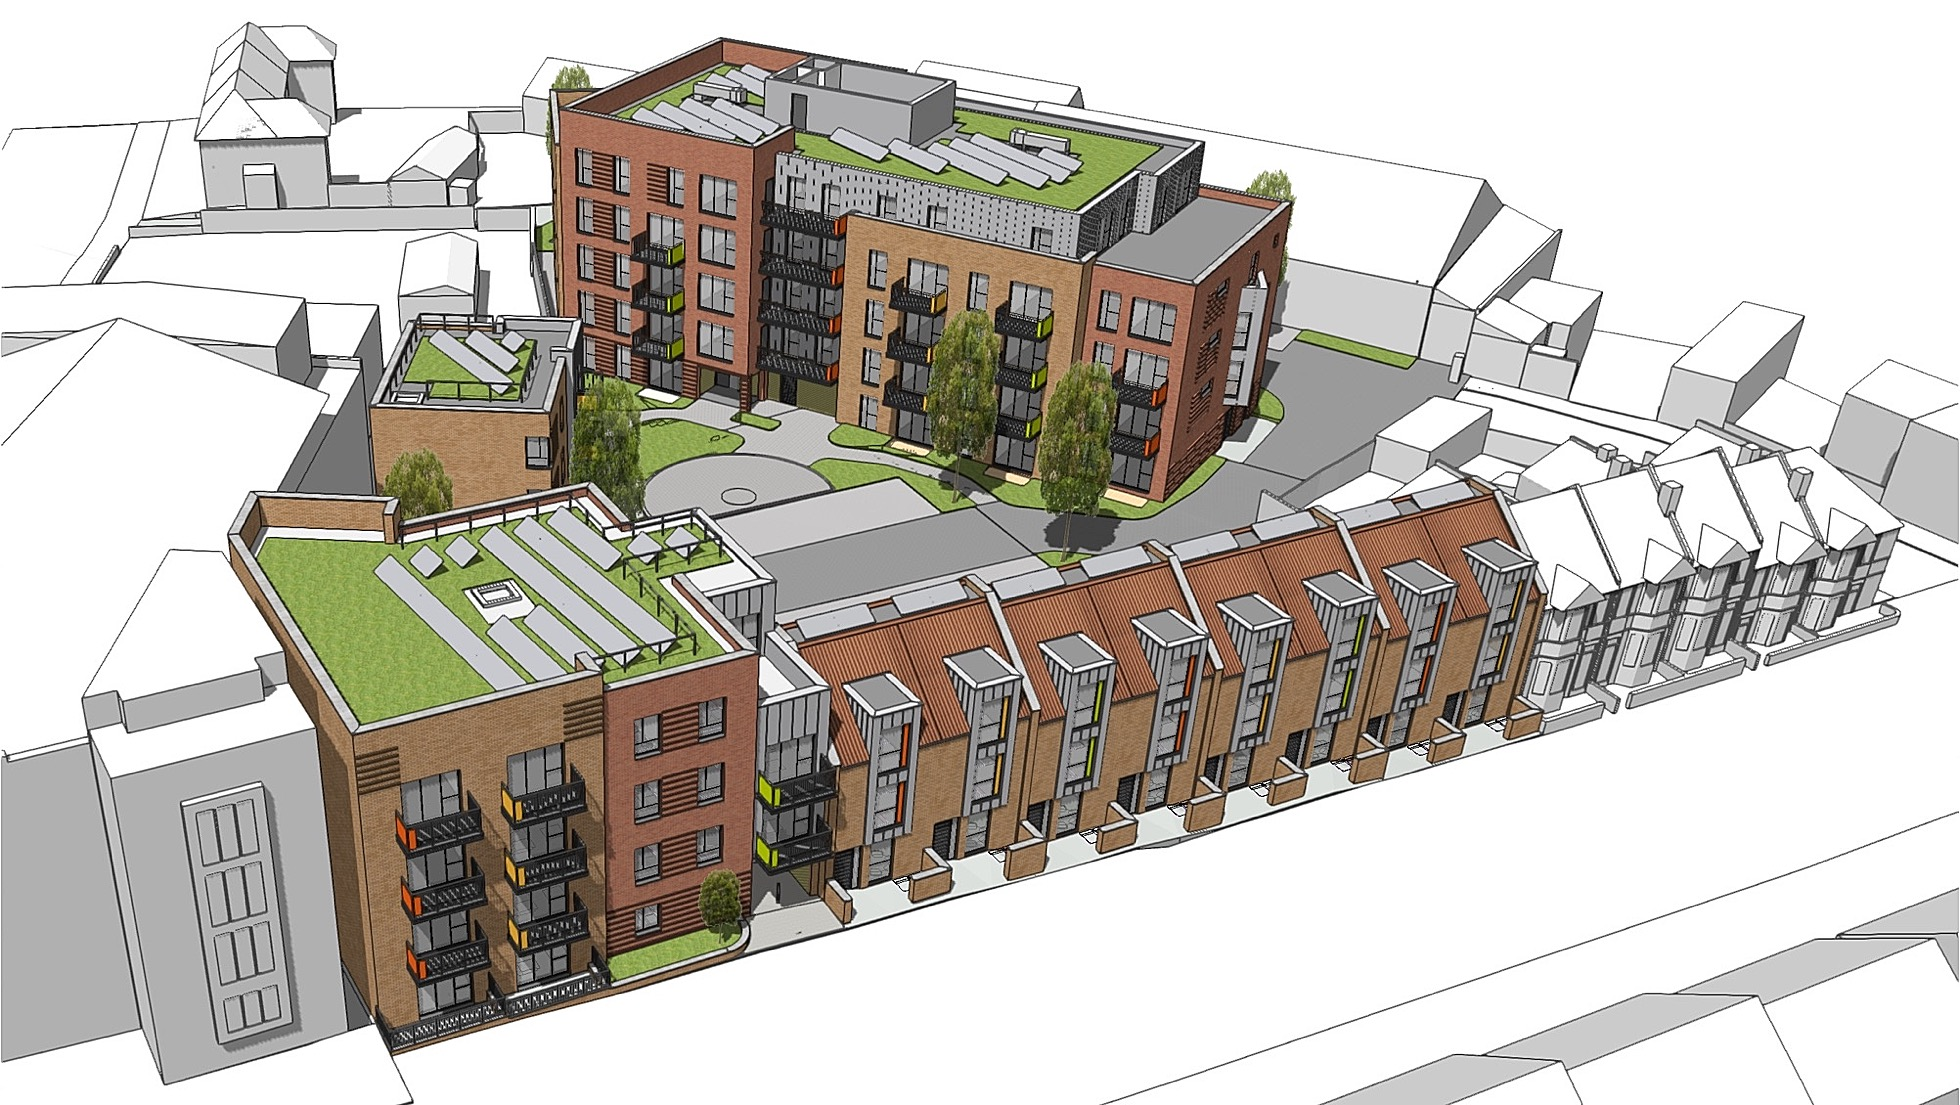 Planning application for Urban Living in South Bristol